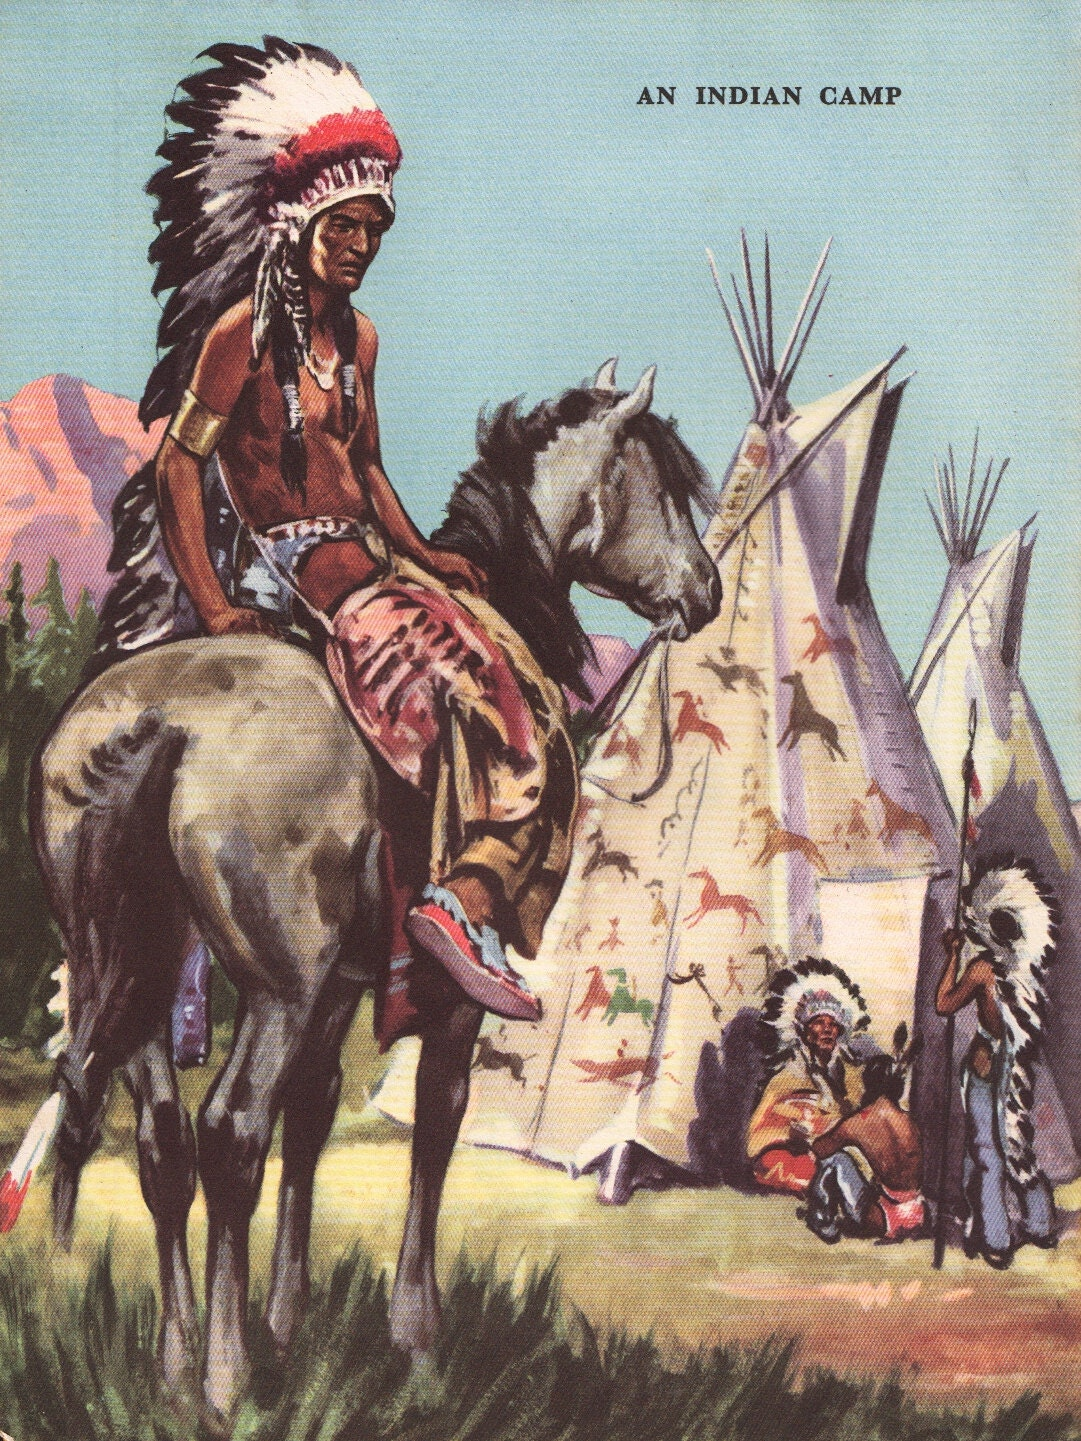 cowboys and indians essay Home old testament deuteronomy canaanites, cowboys, and indians robert allen warrior wrote an essay in the september 1989 issue of.